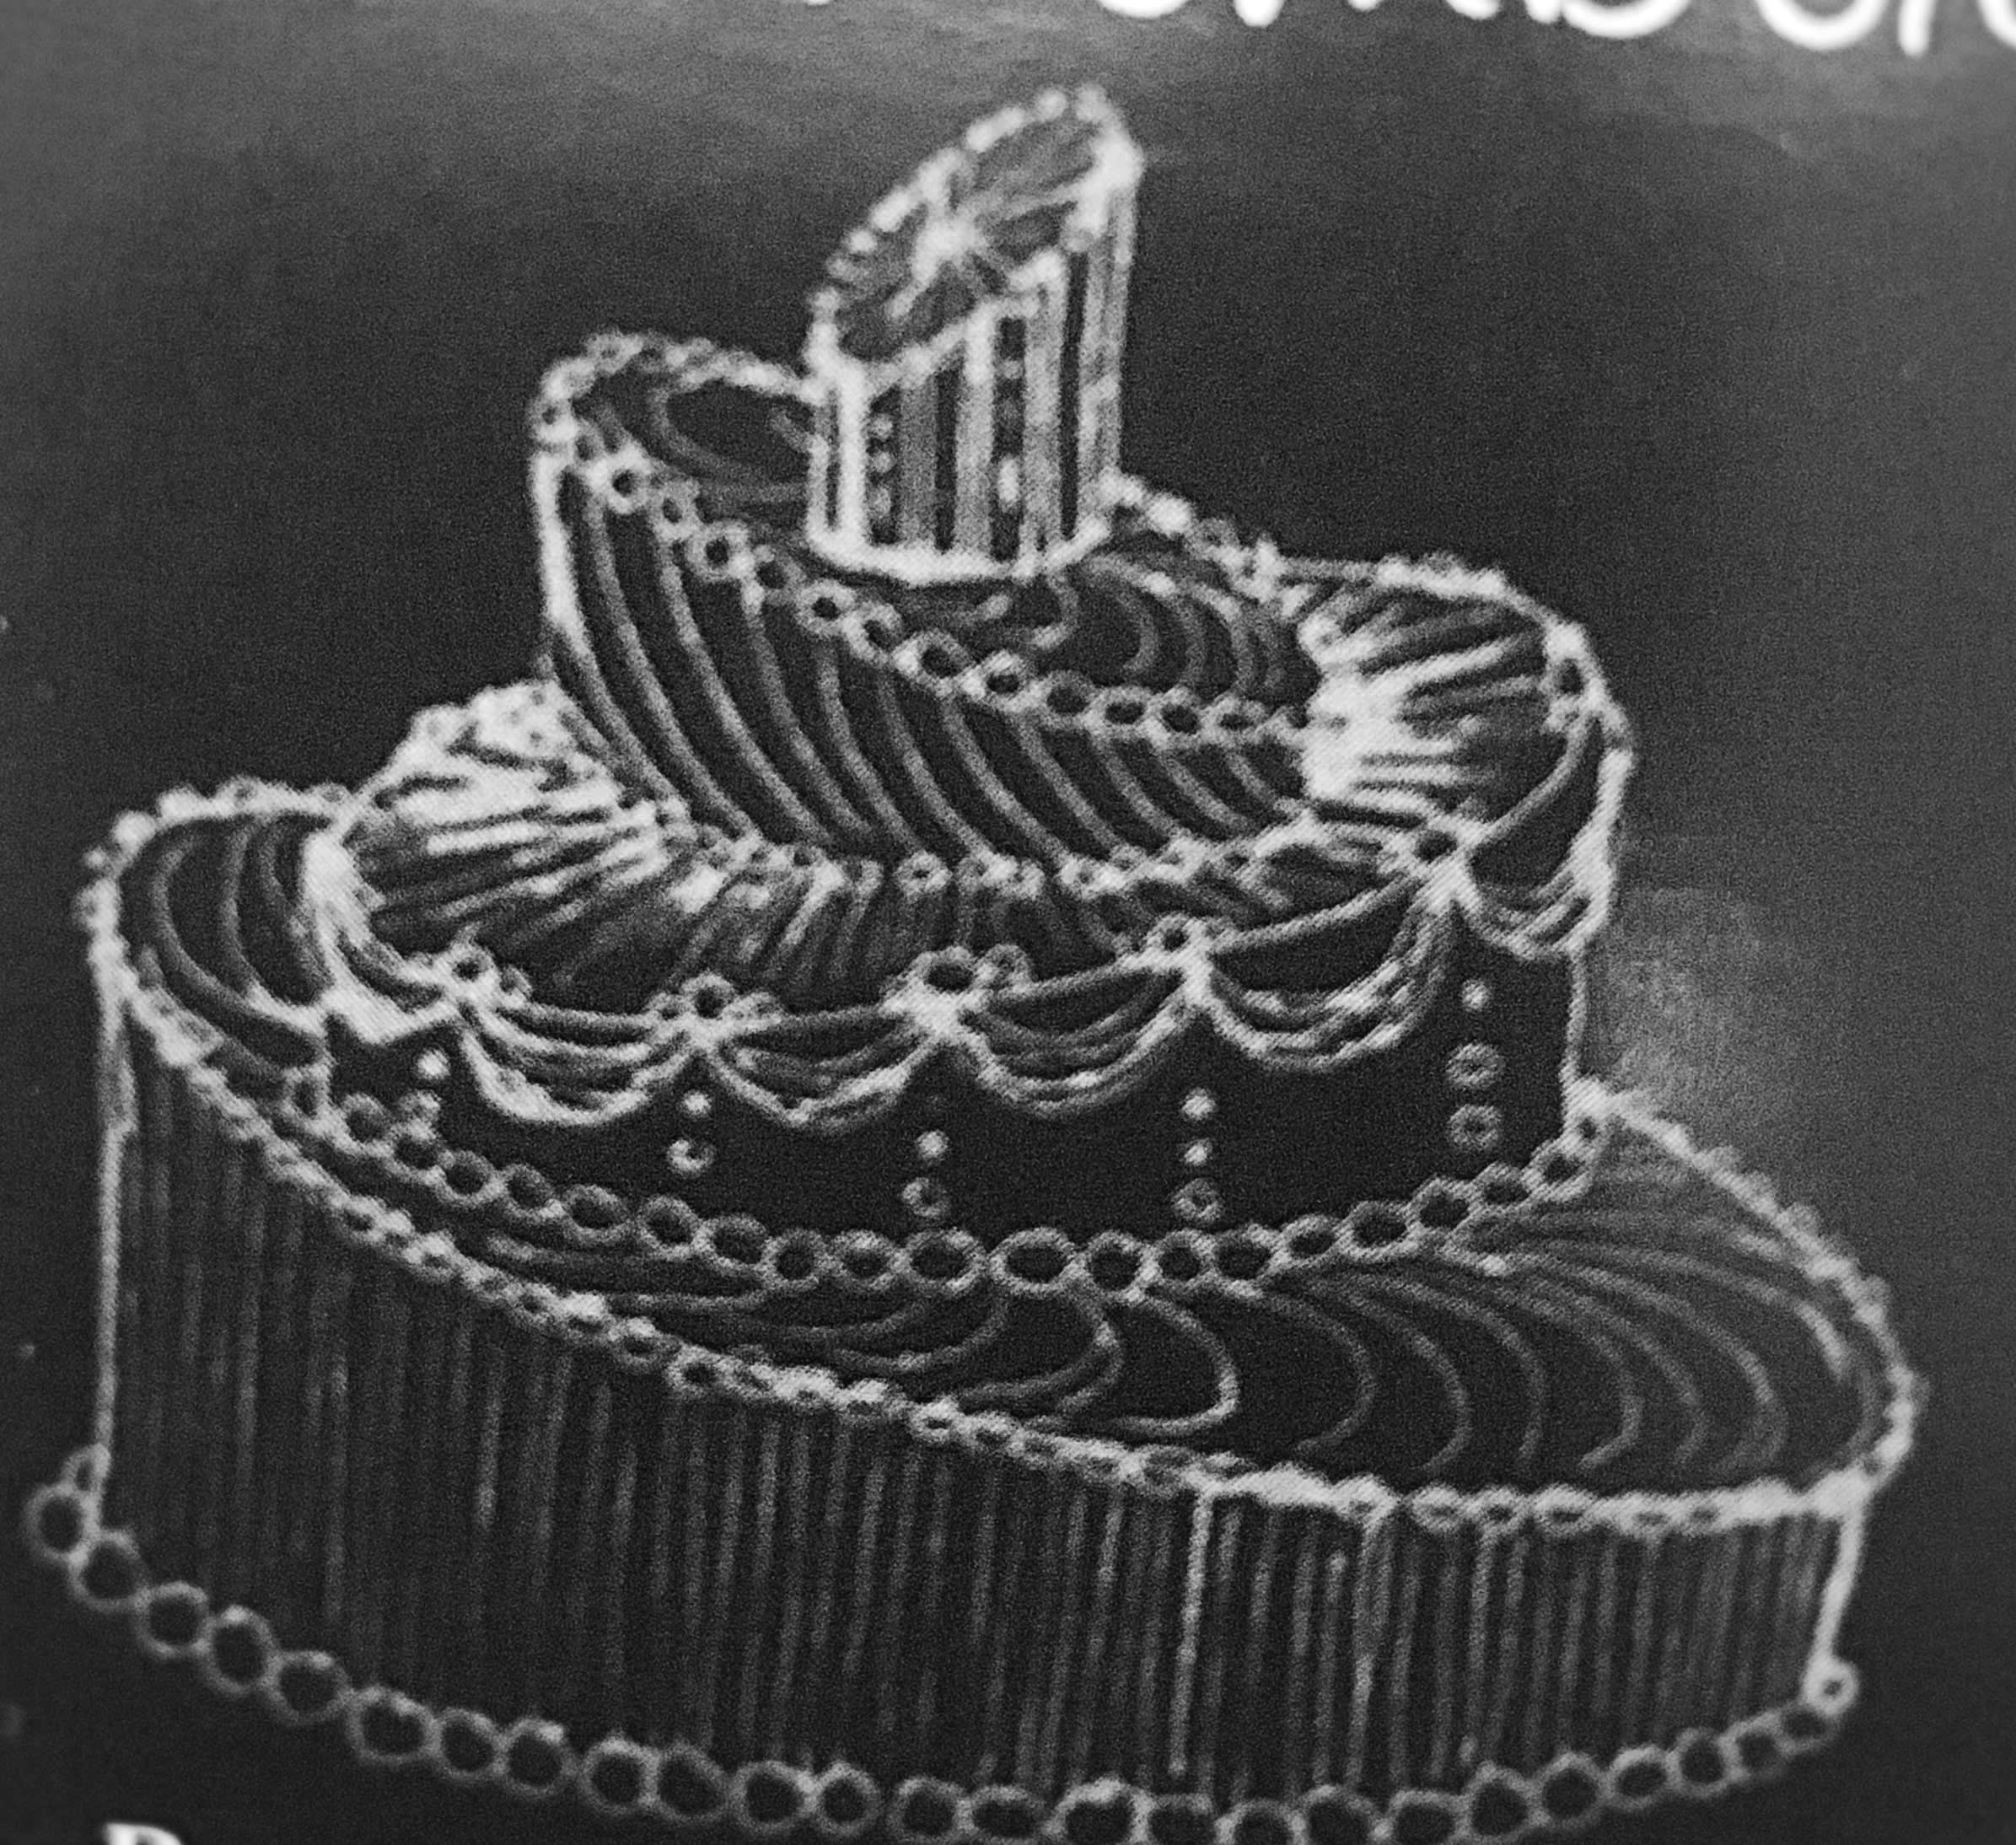 A Cake To Remember